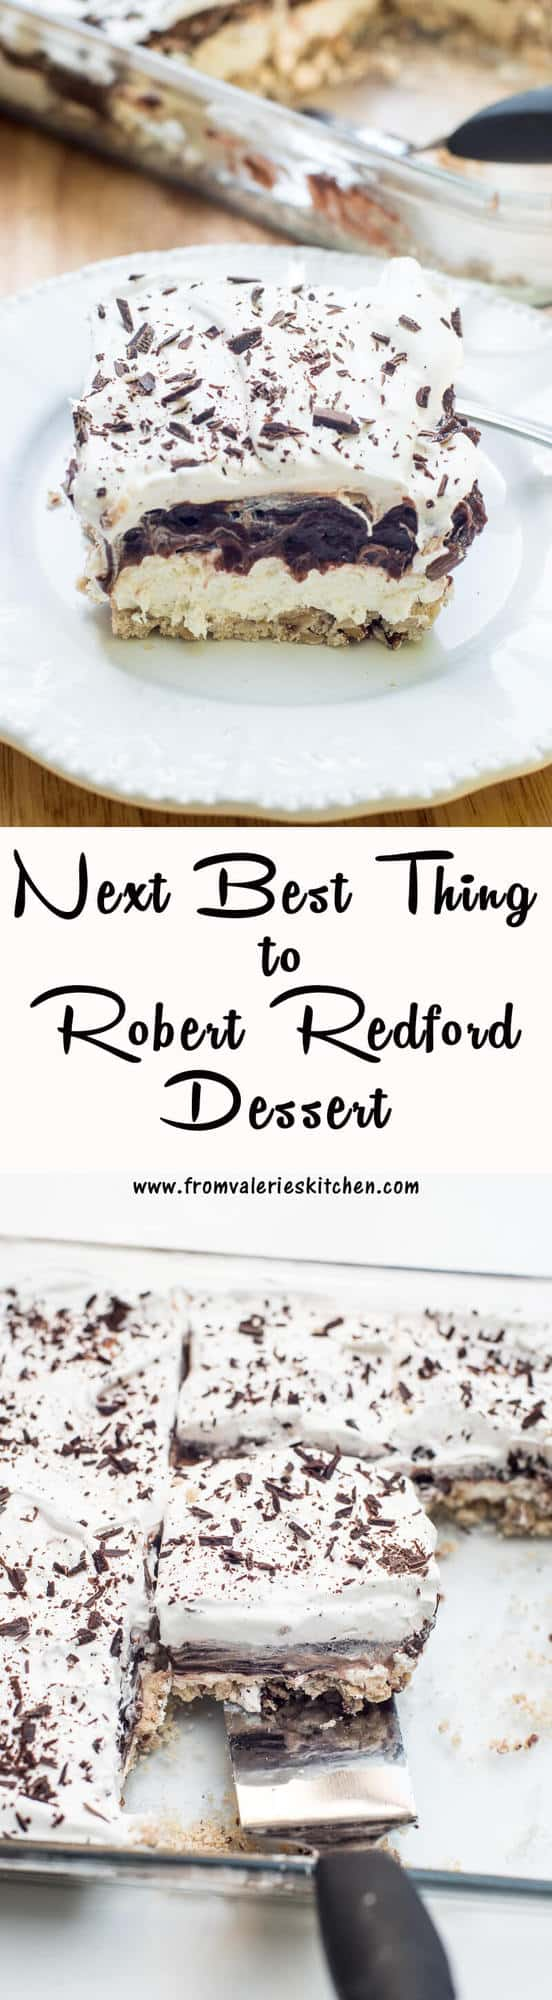 The Next Best Thing to Robert Redford Dessert is full of creamy, chocolatey layers on top of a pecan shortbread crust. A fun throwback to the 70's dessert!